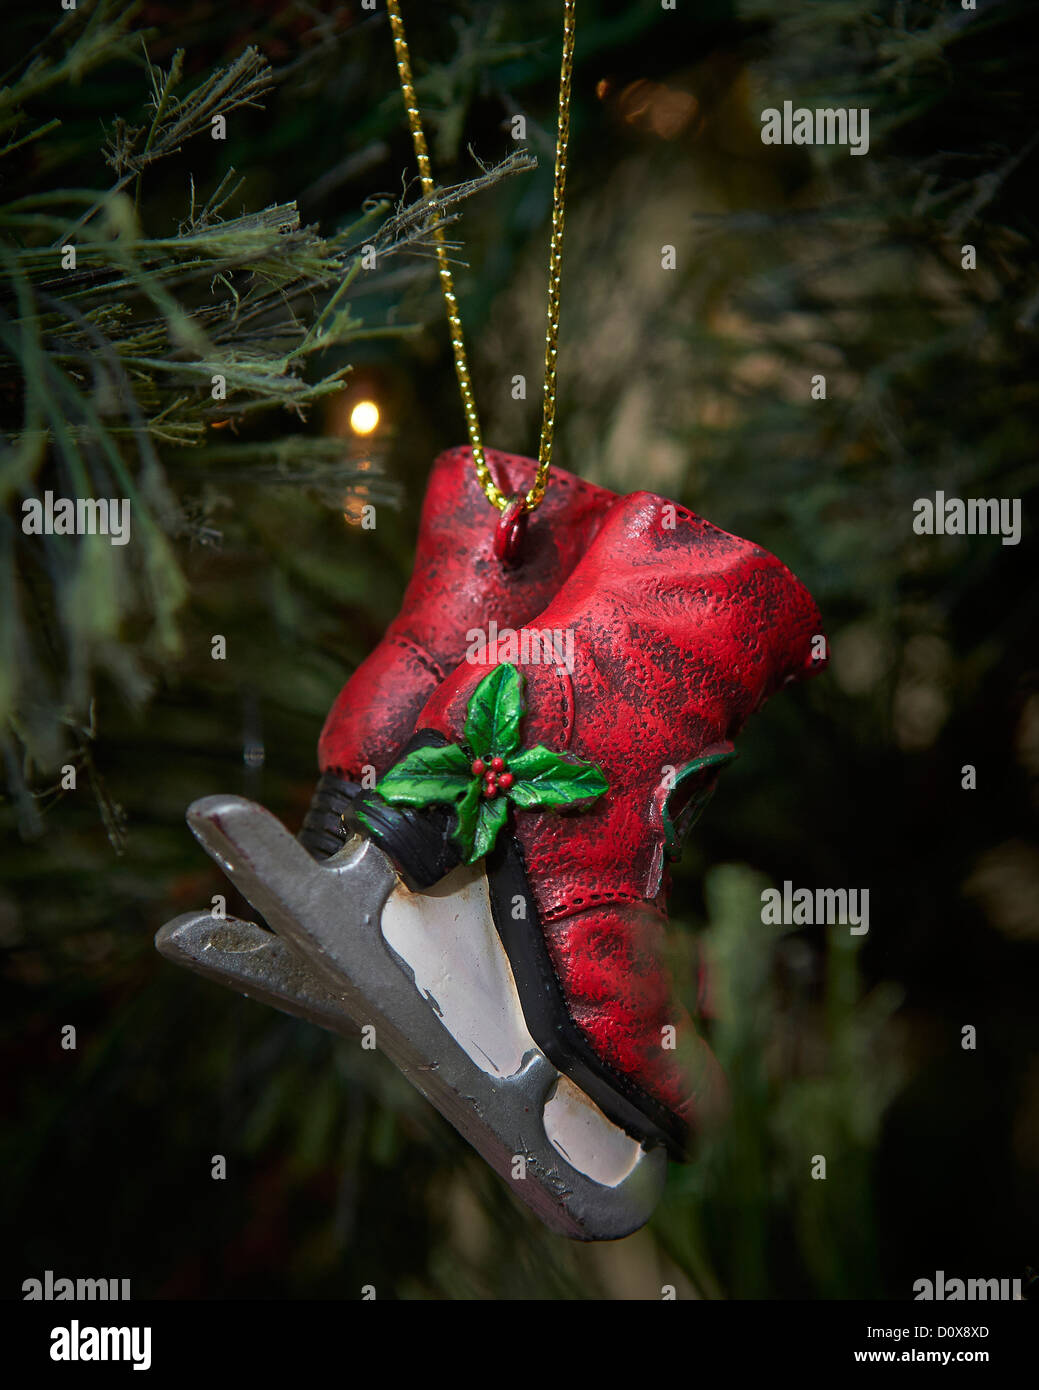 a christmas tree ornament of a pair of red ice skates and mistletoe hanging in